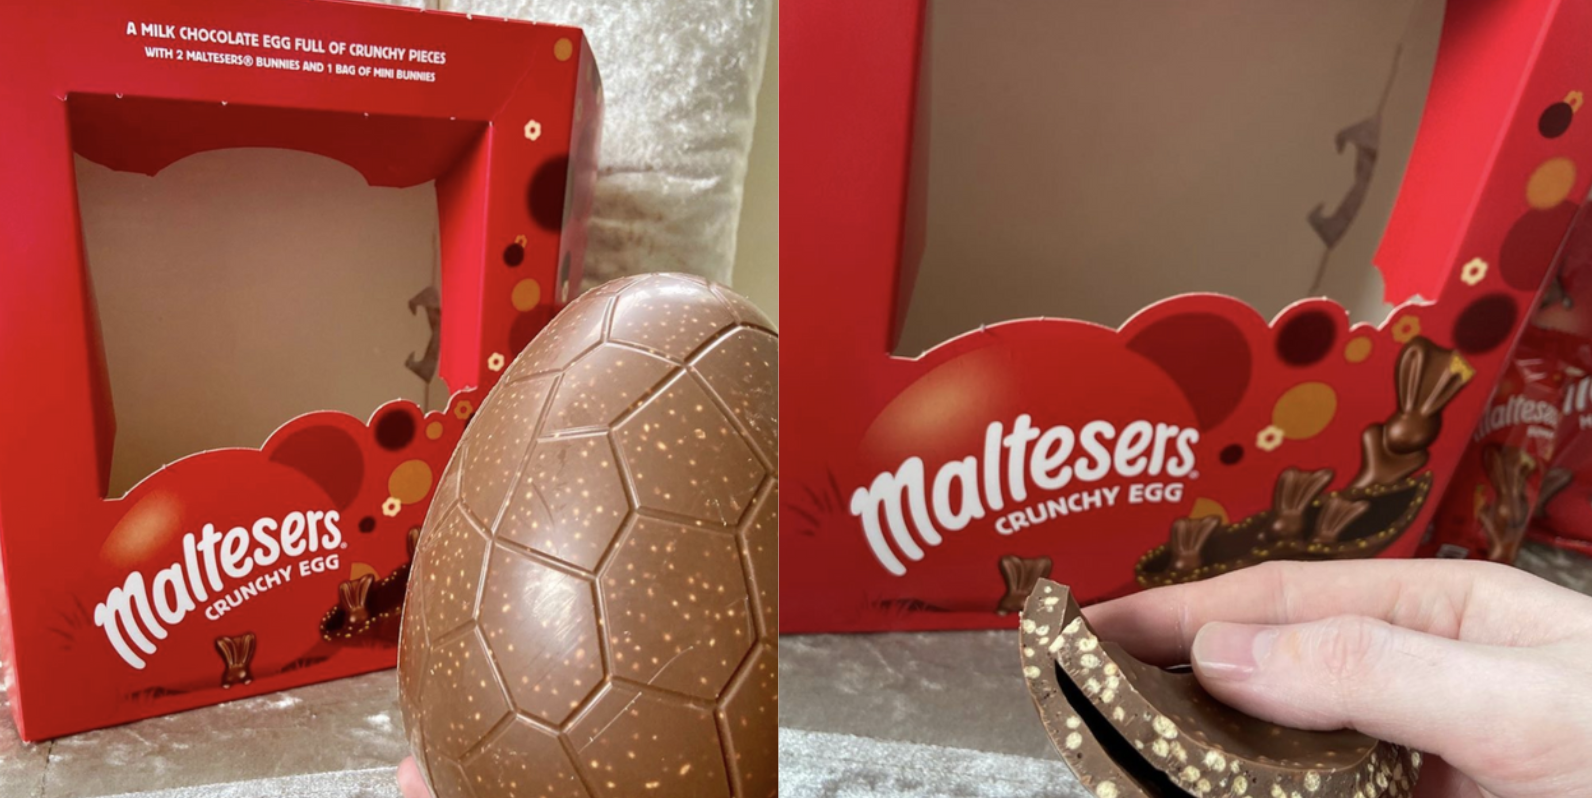 Maltesers Sells A Huge And Crunchy Chocolate Egg